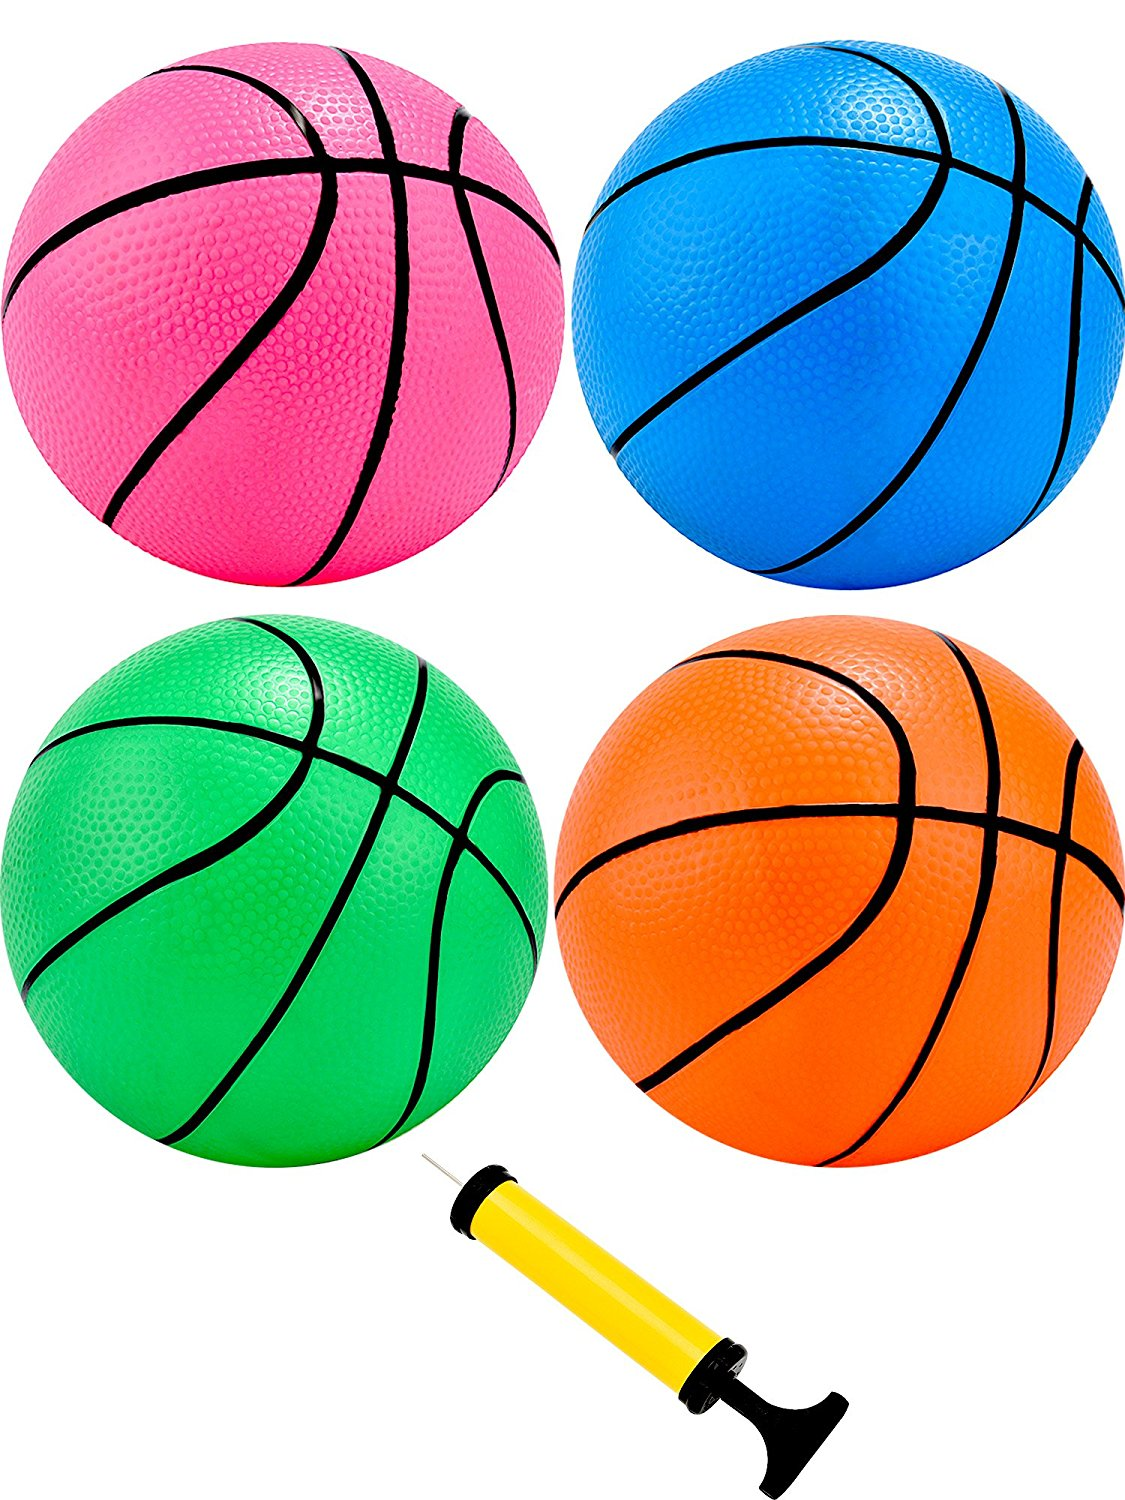 Tecunite 4 Pieces 5 Inch Mini Basketball Inflation Mini Ball Toys with Pump and Basketball Needles for Kids, 4 Colors